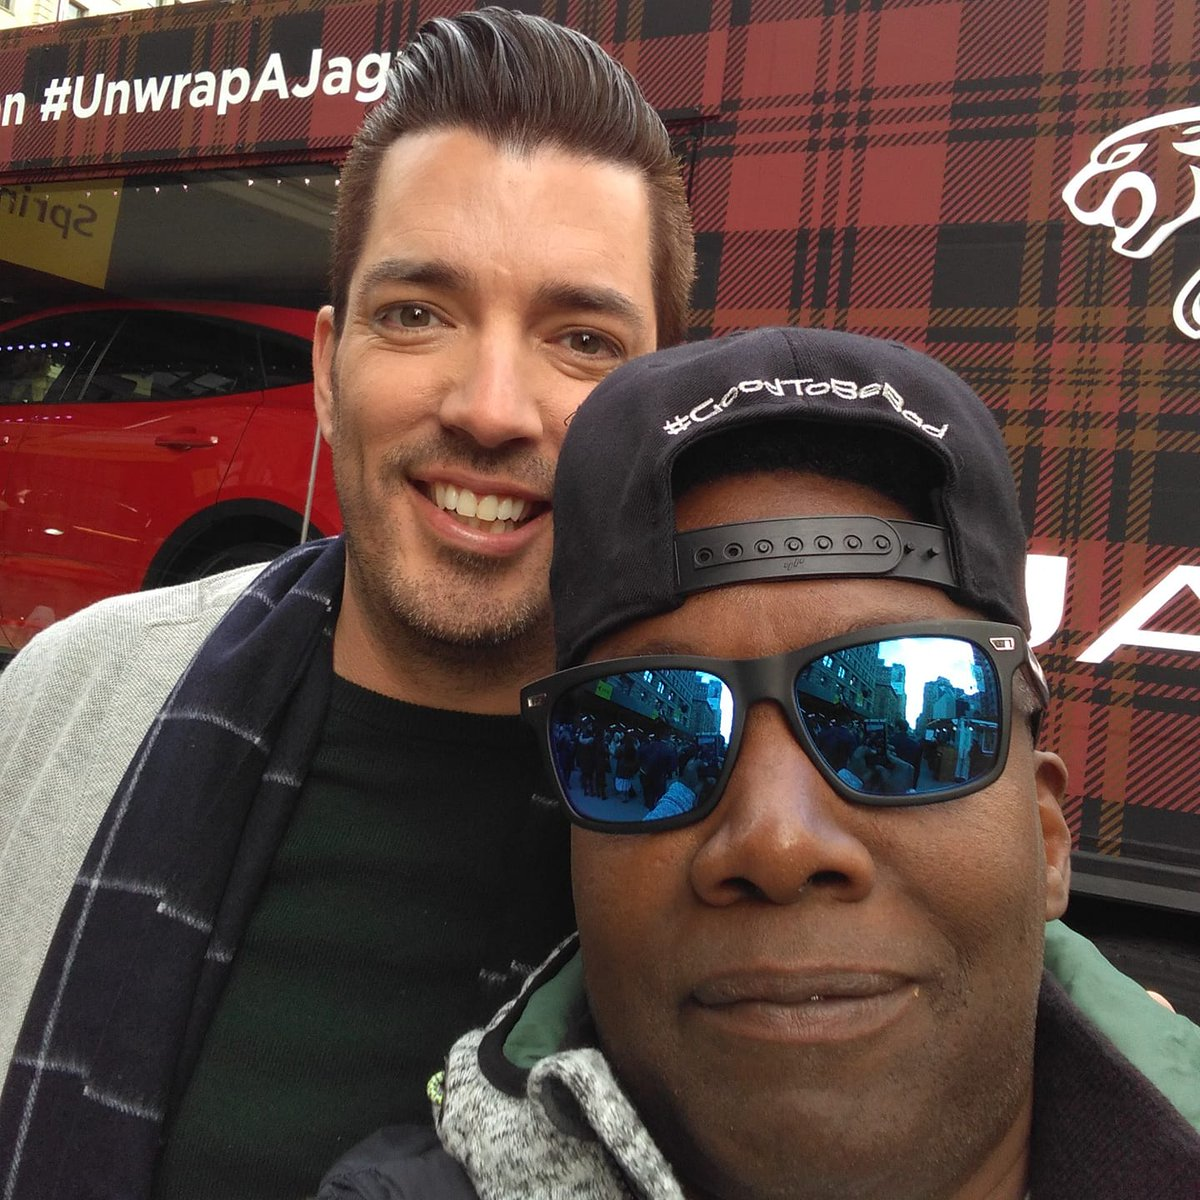 When we are done here I need you to see a apartment I want to buy  #unwrapajaguar #PropertyBrothers http://www.unnamedproject.com/featured/jonathan-scotts-mobile-holiday-window-featuring-the-jaguar-e-pace-suv/…  @MrSilverScott #unwrapajaguar @jaguarusa #Jaguar @InteractiveJag @Jaguar #jonathanscott @JSSIsMine #stylehim #holiday2018